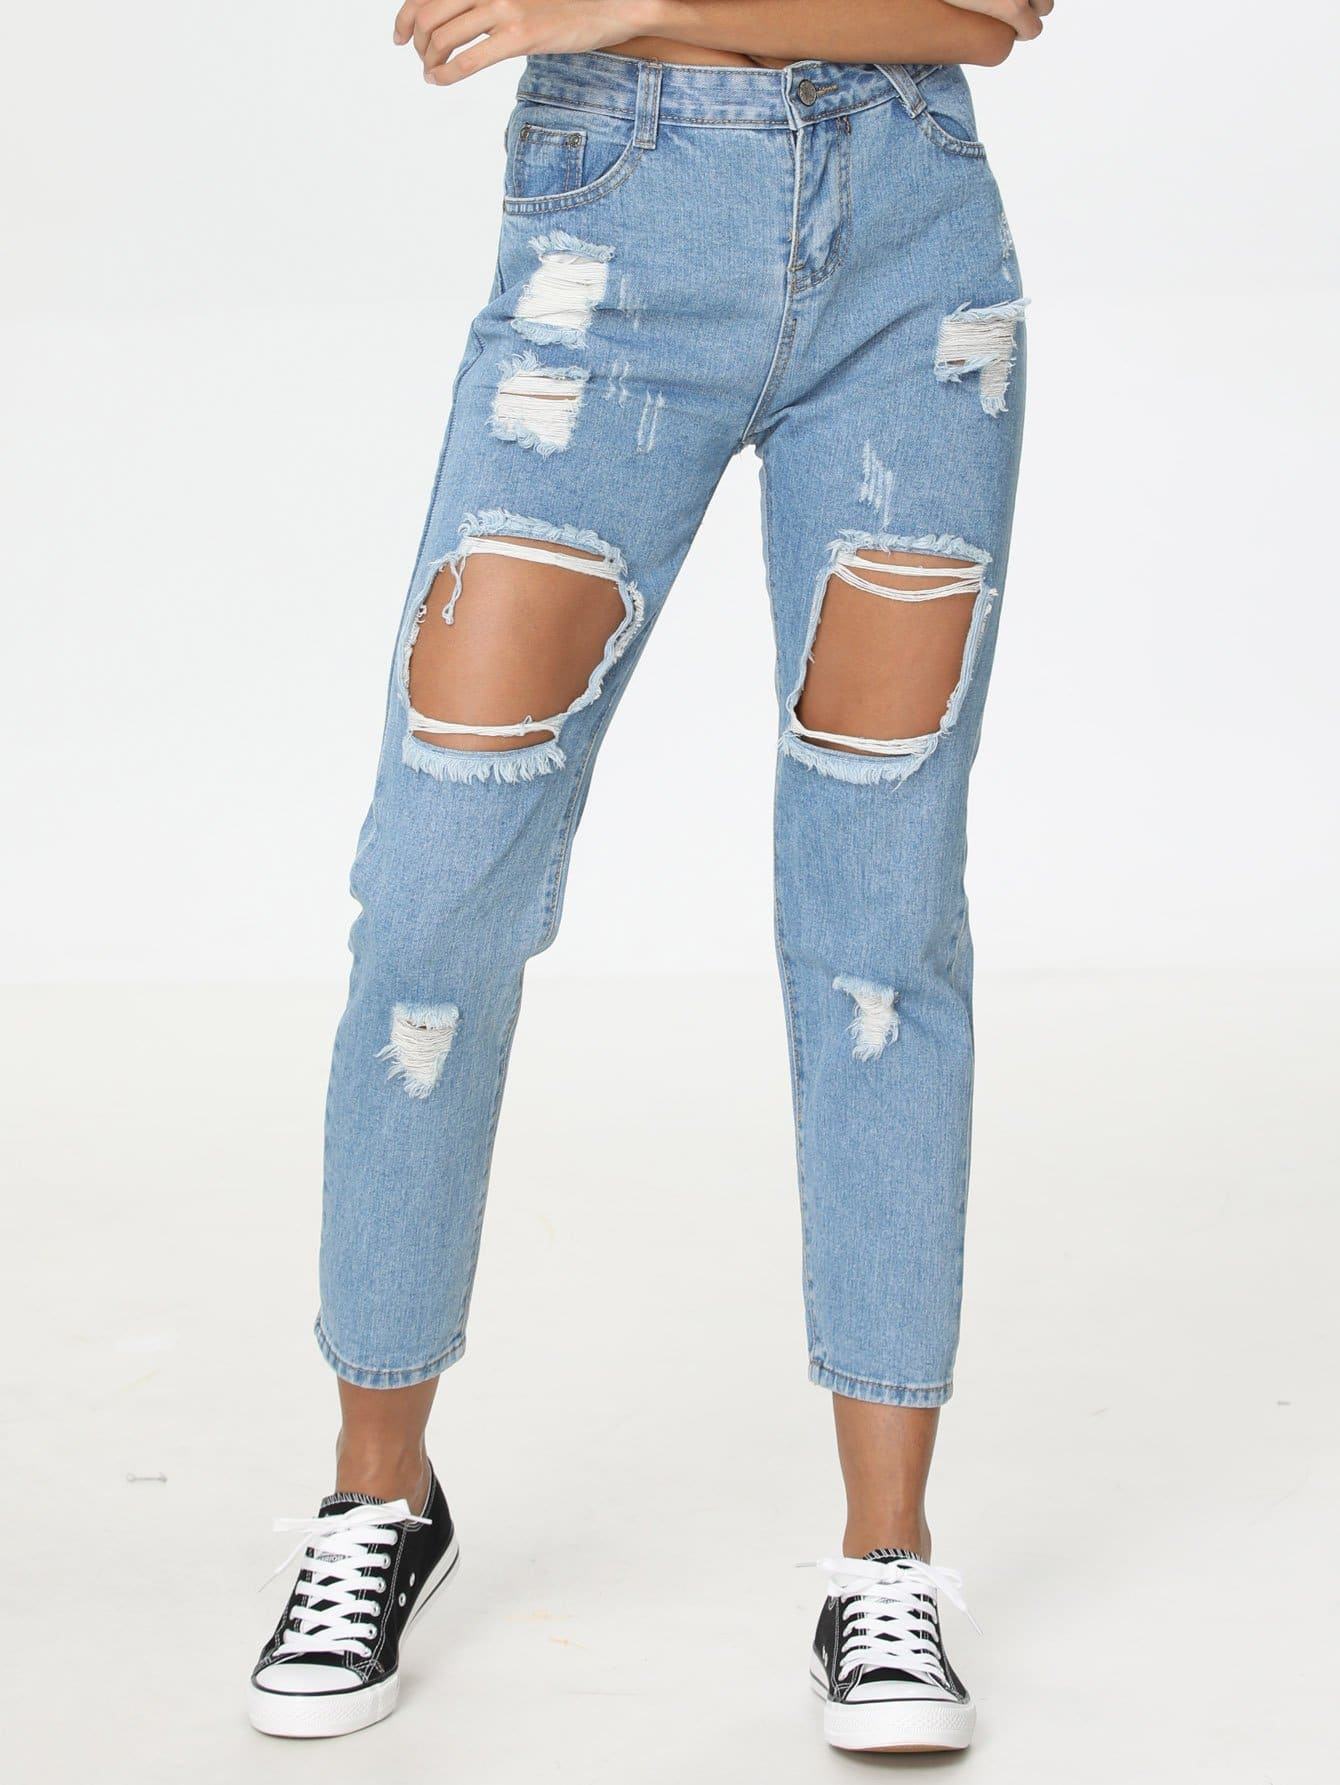 Cut Out Destructed Jeans ferzige woman jeans boot cut embroidered high stretch womens flared pants ladies flowers embroidery blue jeans mujer femme jeans